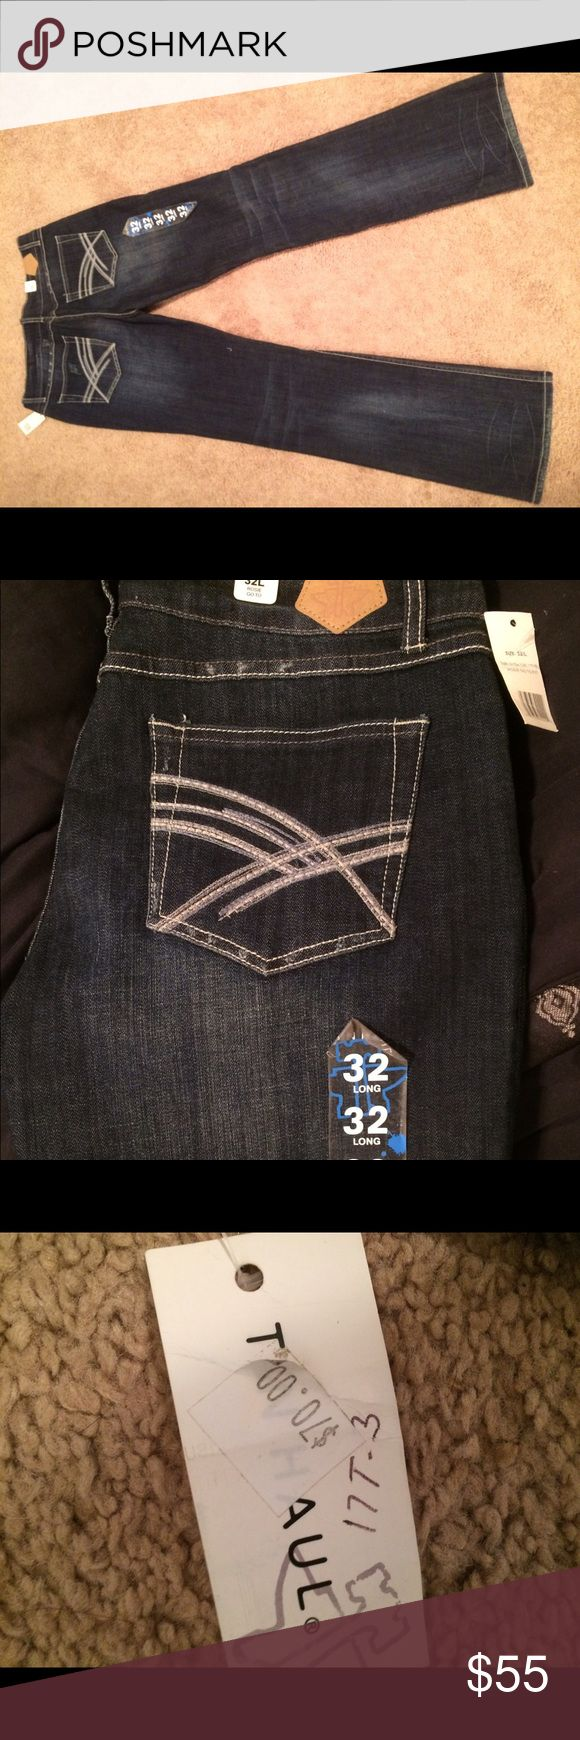 Tin haul jeans Brand new still have the tags on. tin haul Jeans Boot Cut